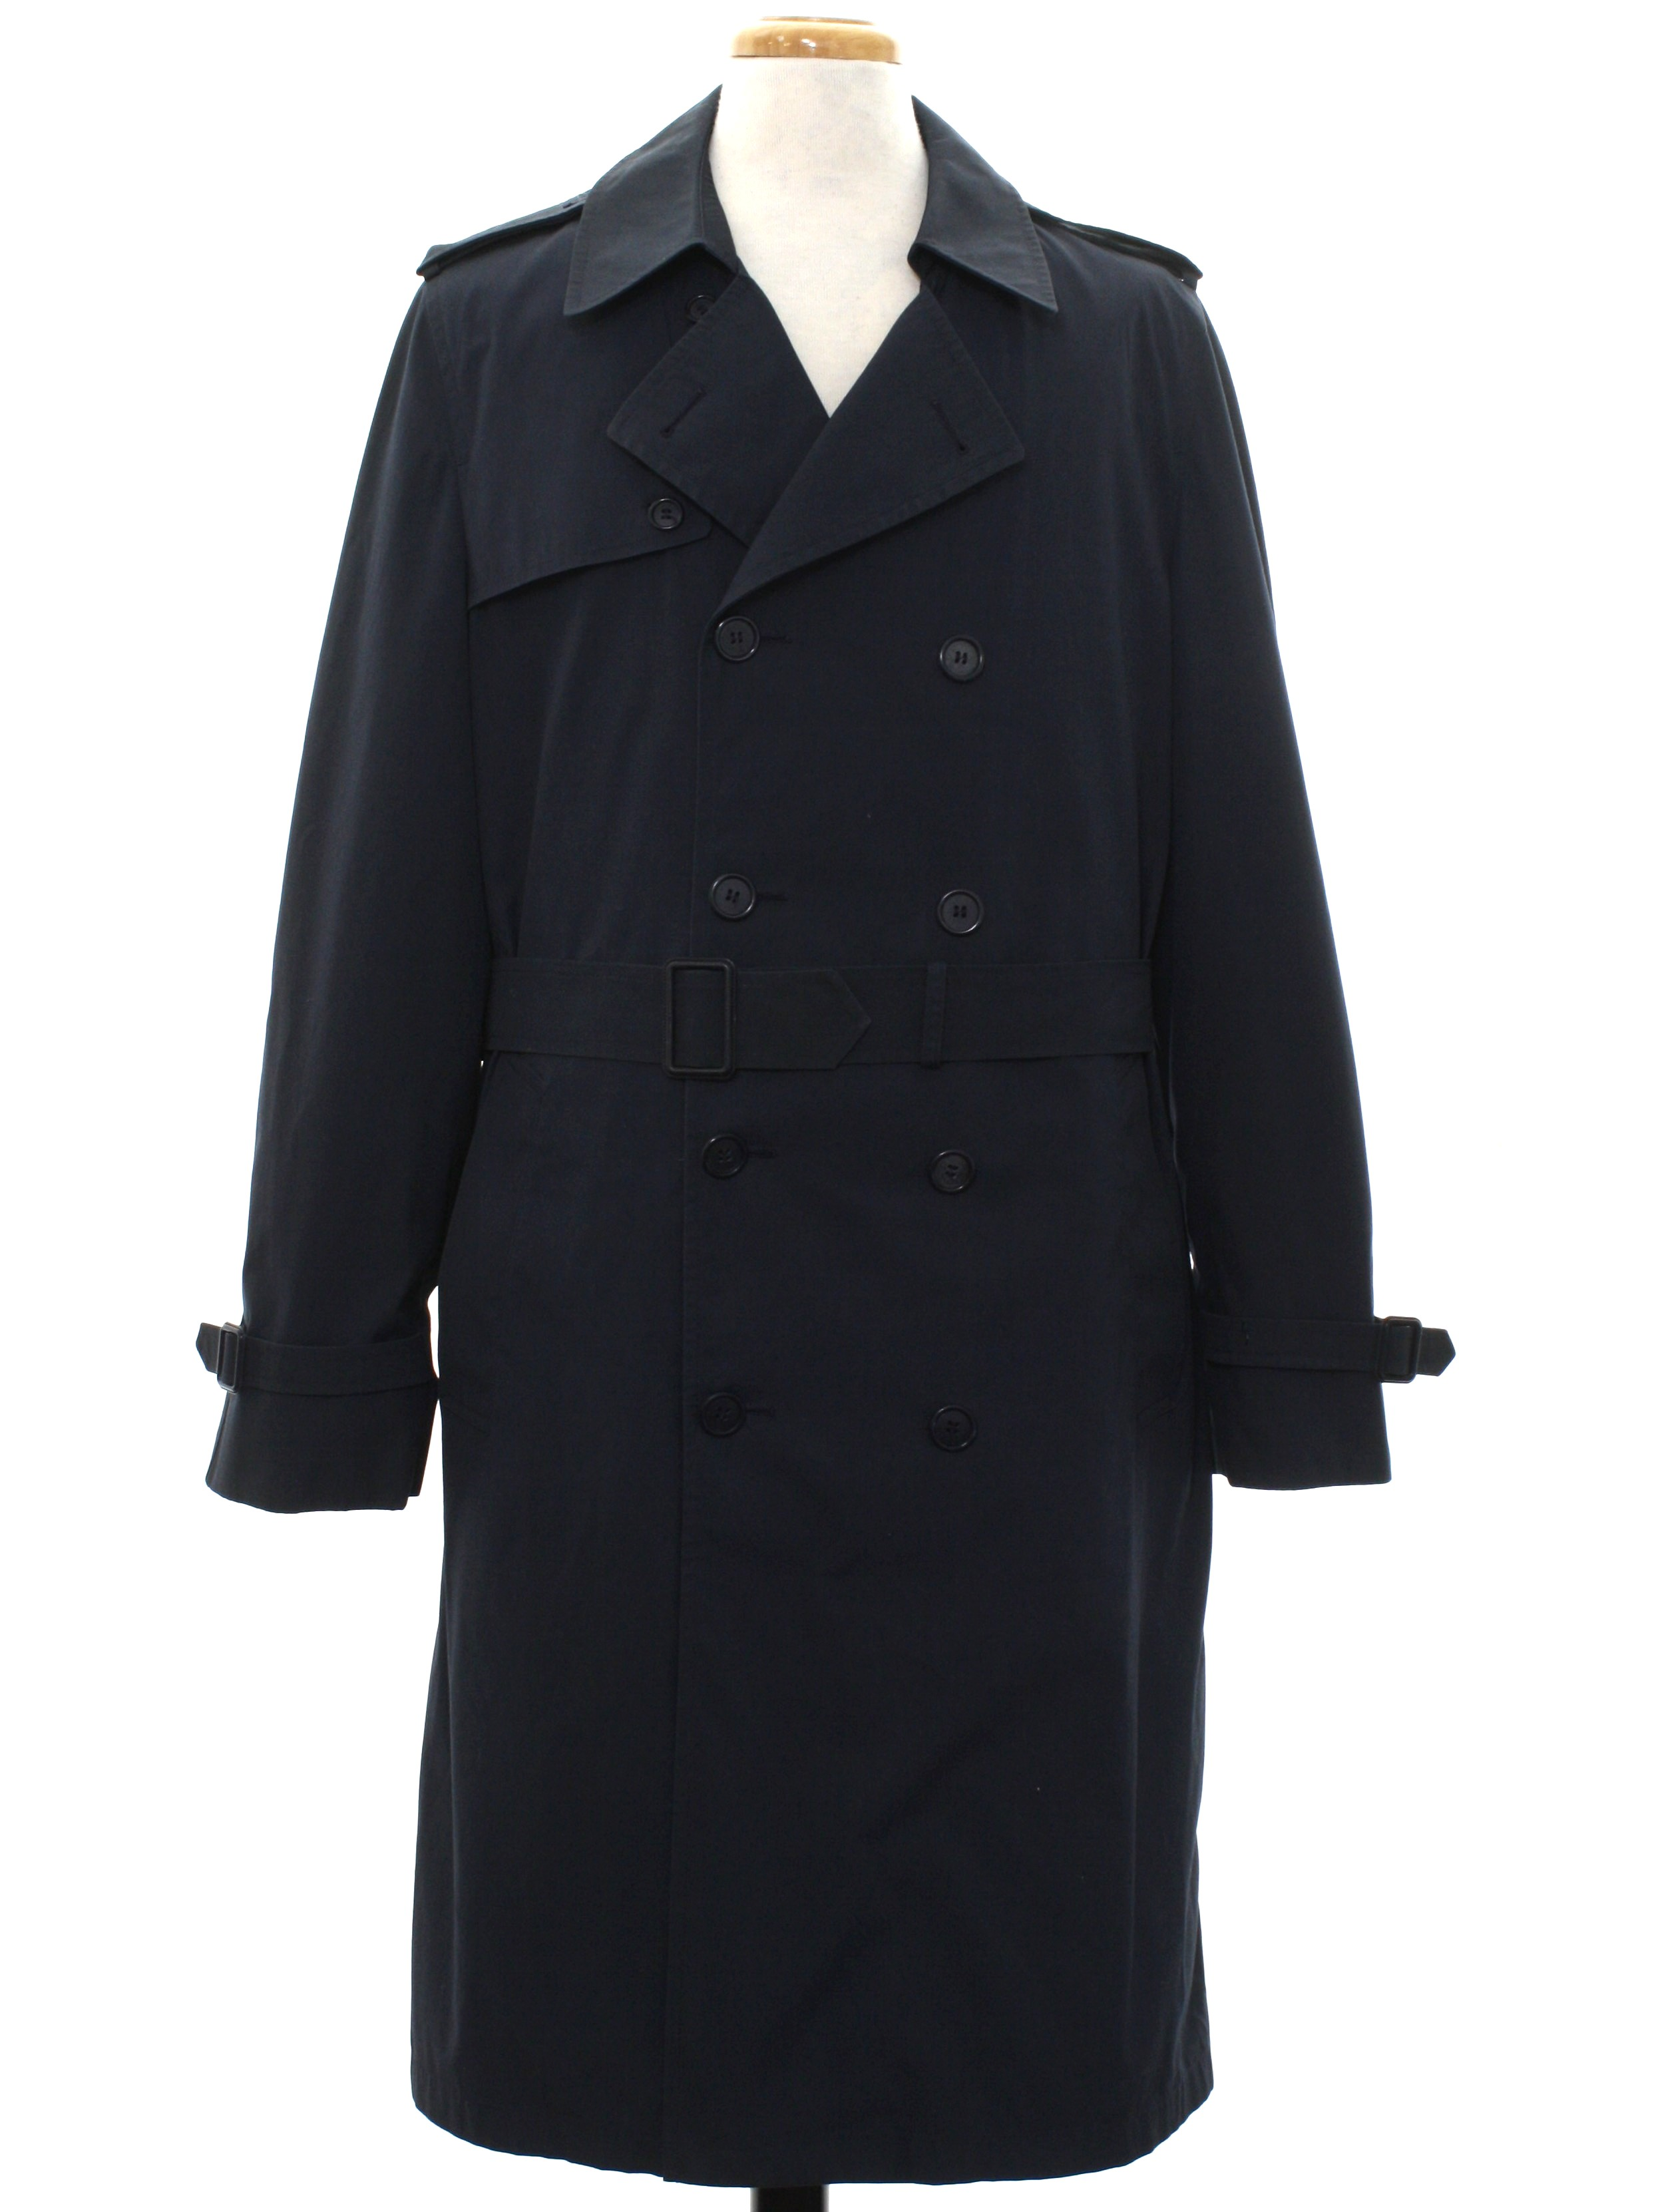 Find great deals on eBay for Mens All Weather Coat in Men's Coats And Jackets. Shop with confidence.